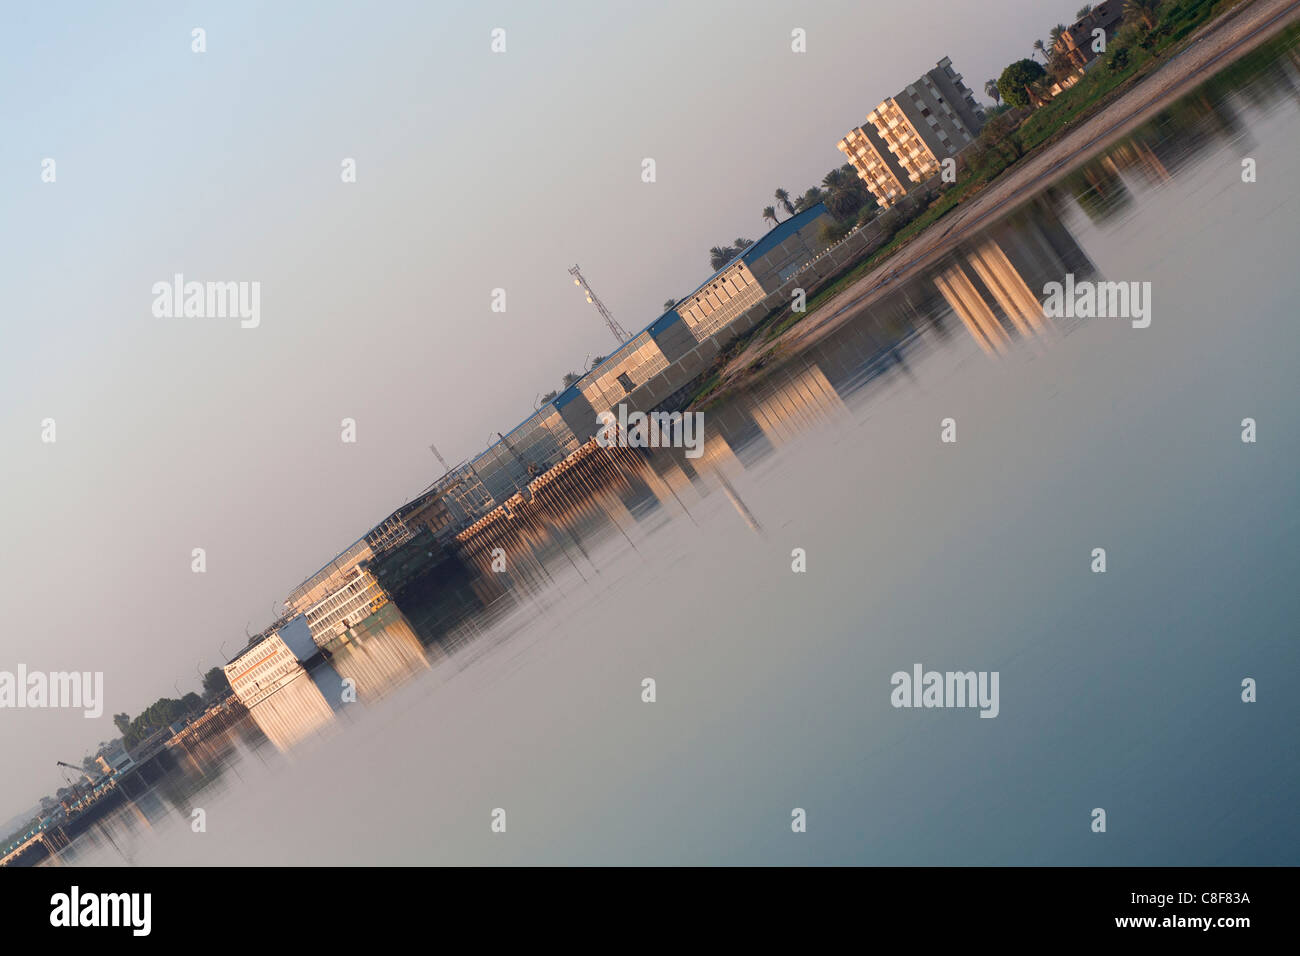 Redundant cruise ships moored near industrial buildings on the Nile reflecting in the golden water, diagonally placed - Stock Image